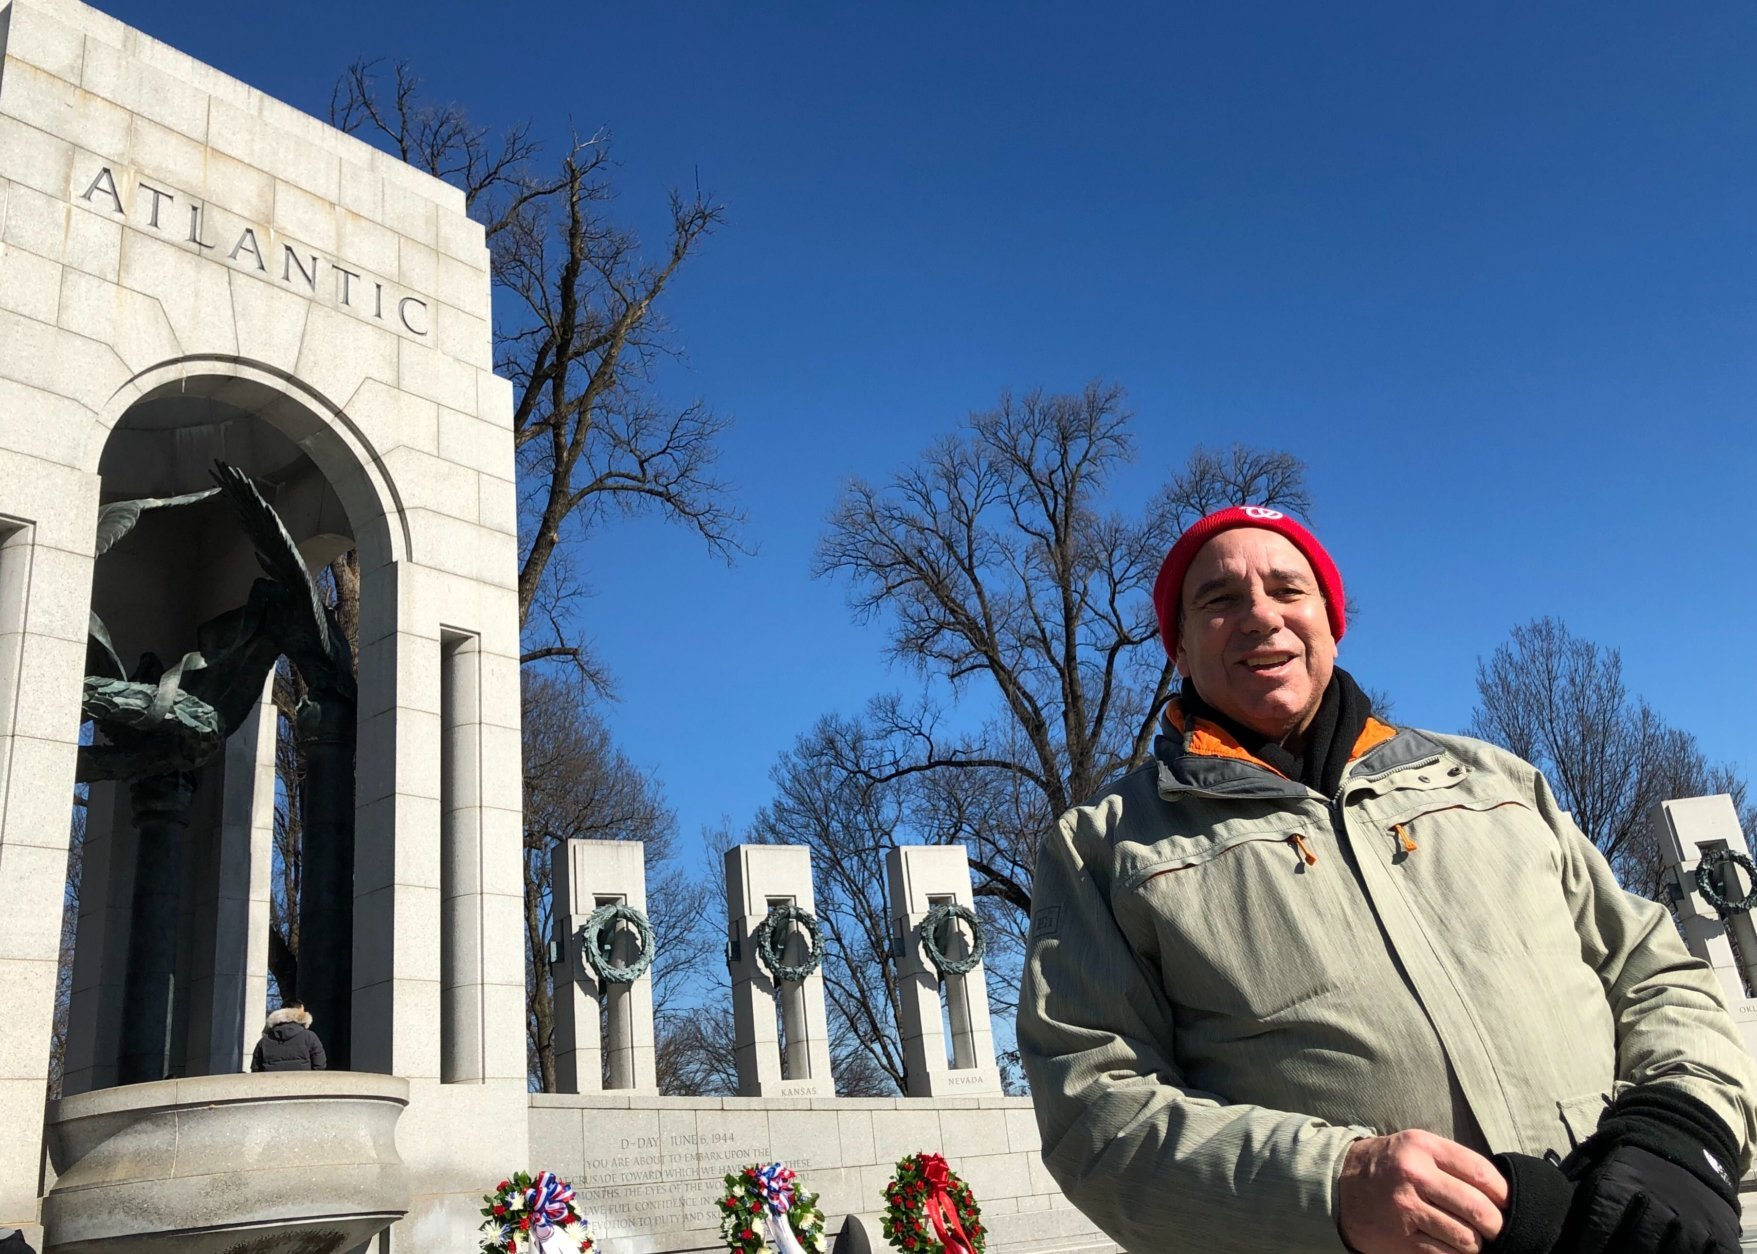 World War II Memorial volunteer Joe Gaziano said the months long campaign in Italy just prior to D-Day in France meant the Allies had the enemy on the run.